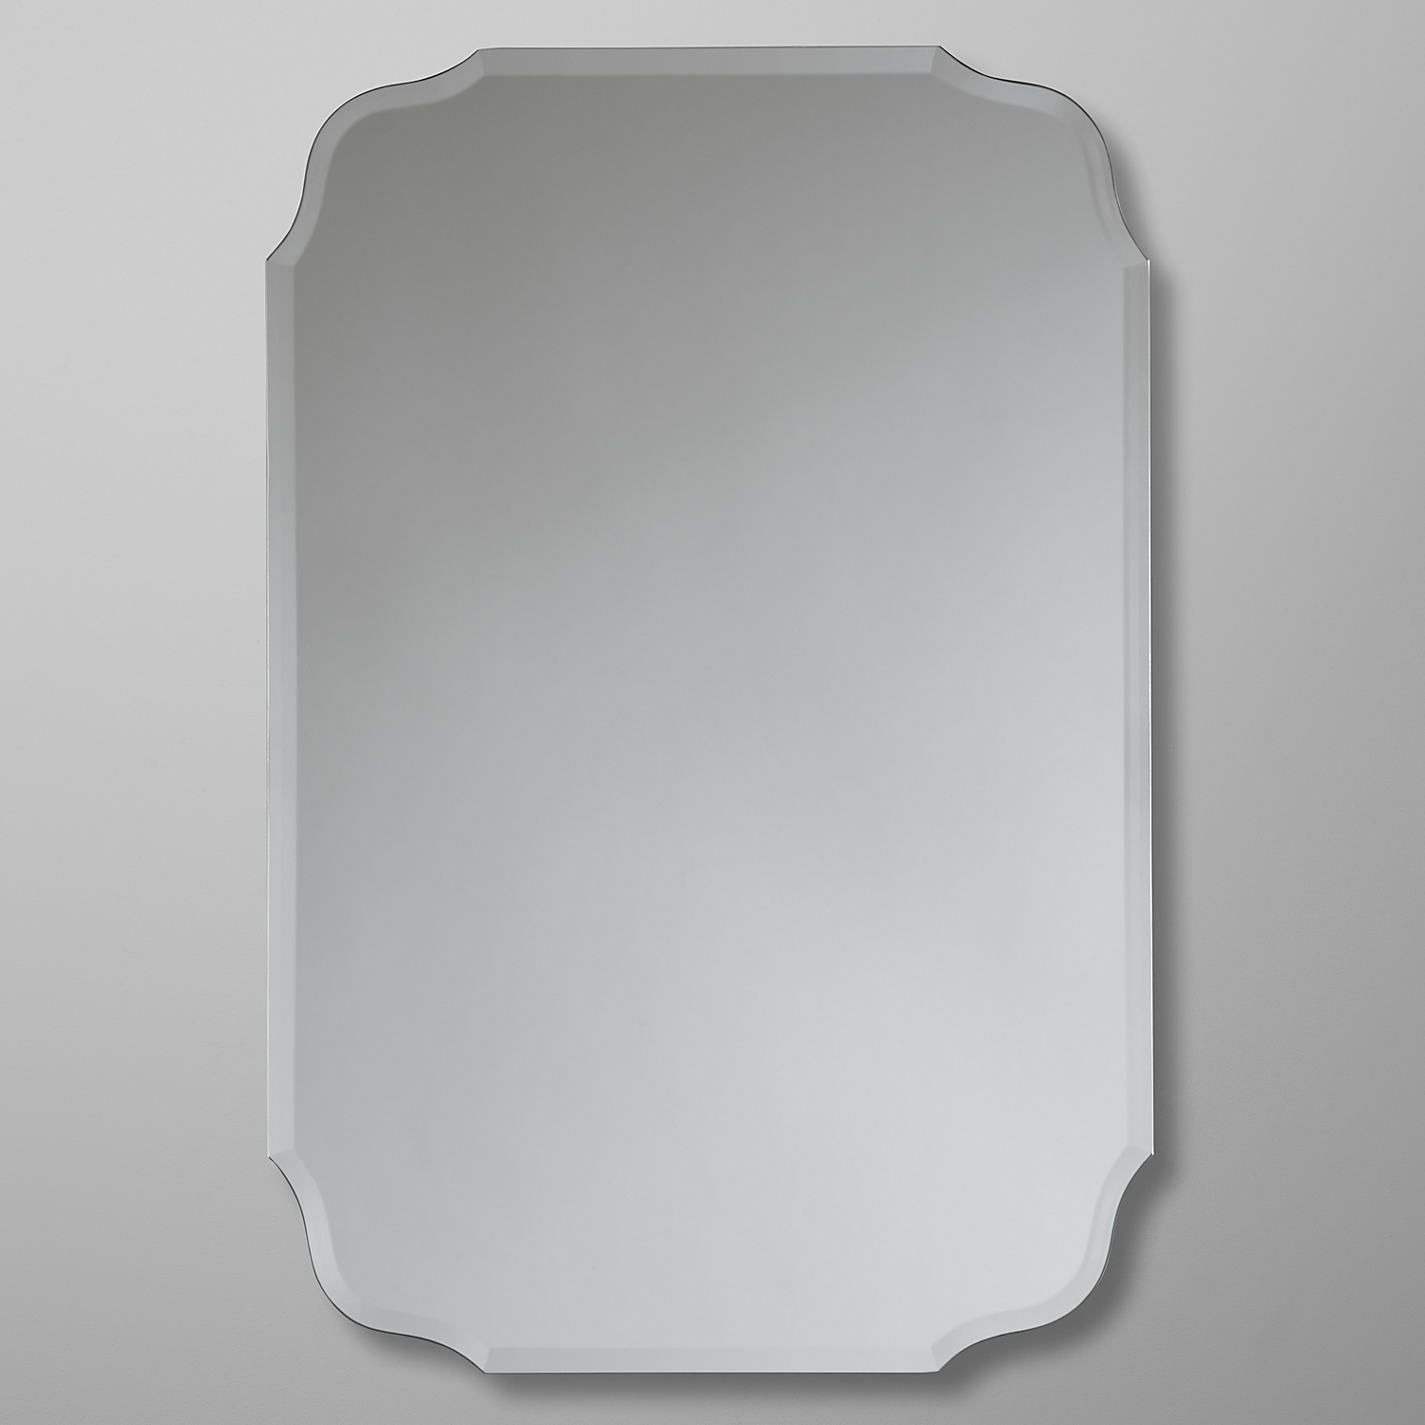 Buy John Lewis Vintage Bathroom Wall Mirror from our Bathroom